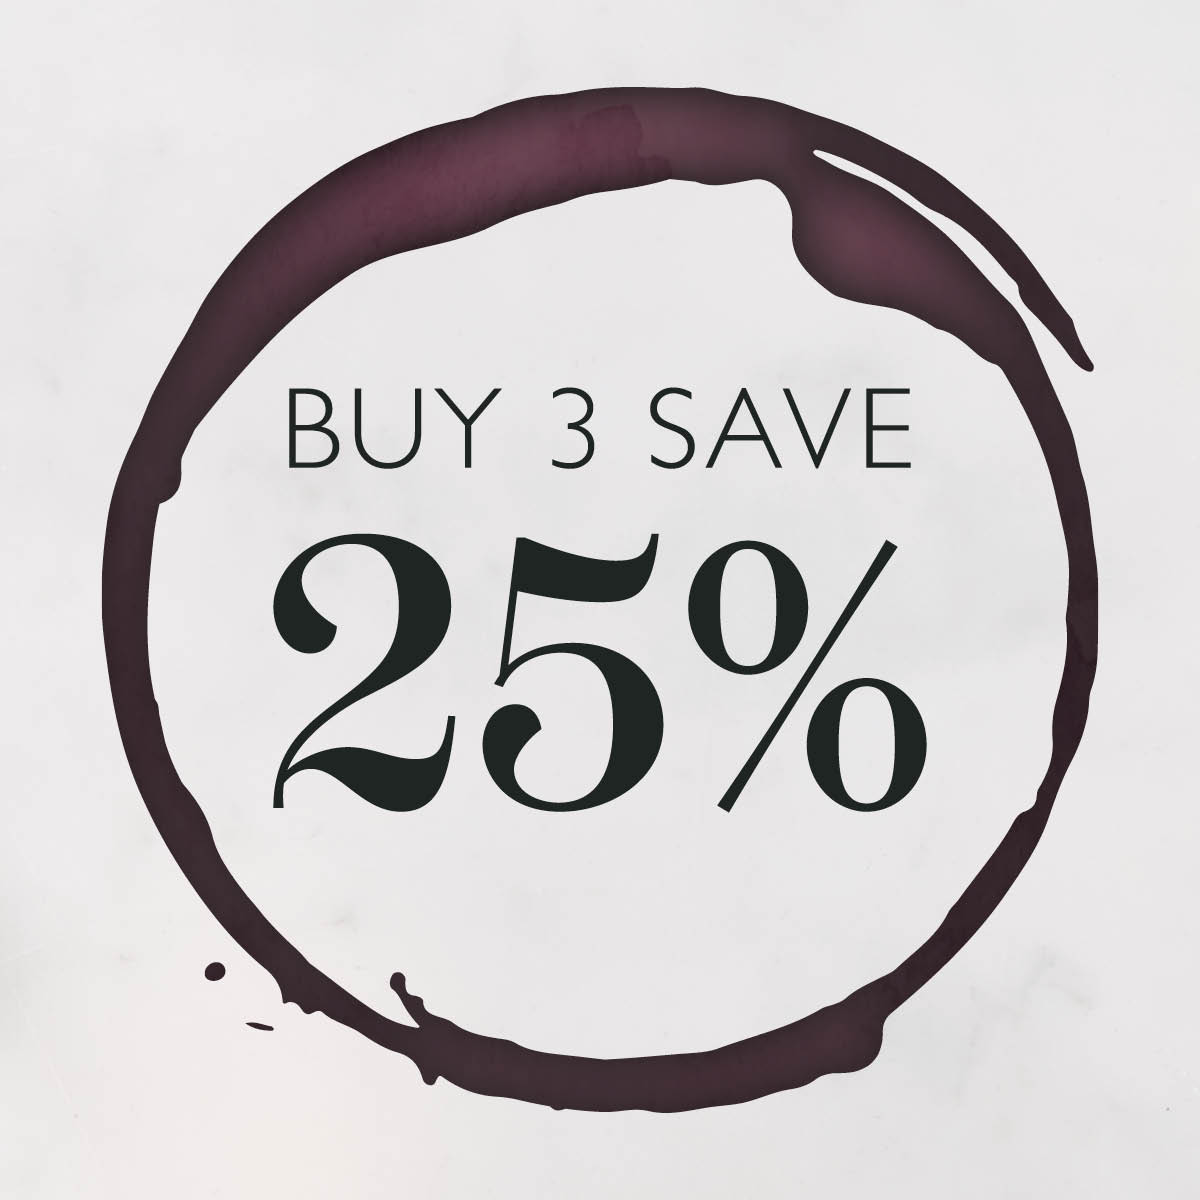 Buy 3 save 25% on Selected Wines